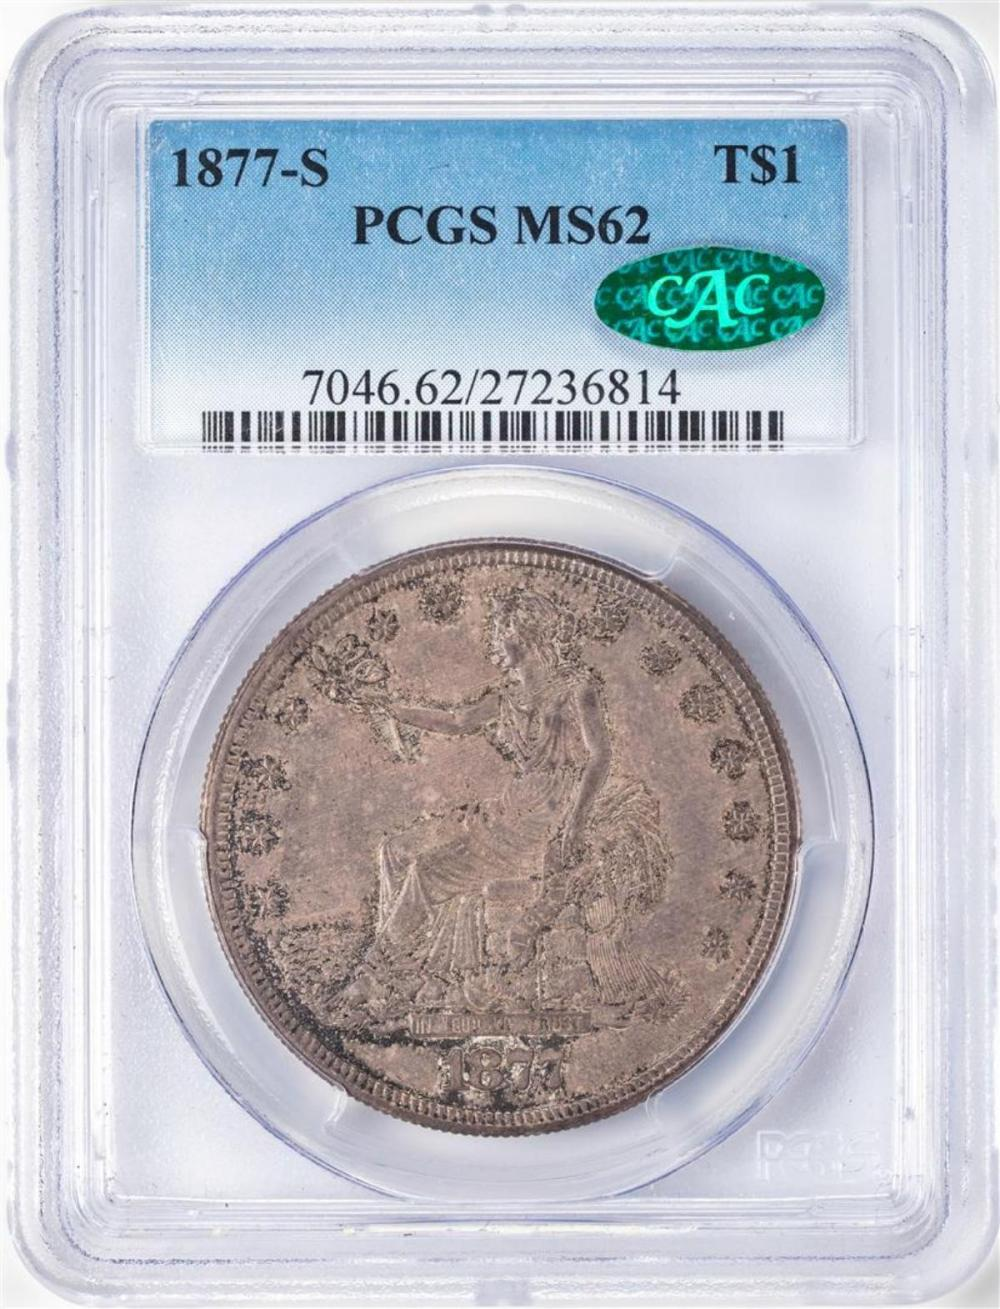 1877-S $1 Trade Silver Dollar Coins PCGS MS62 CAC